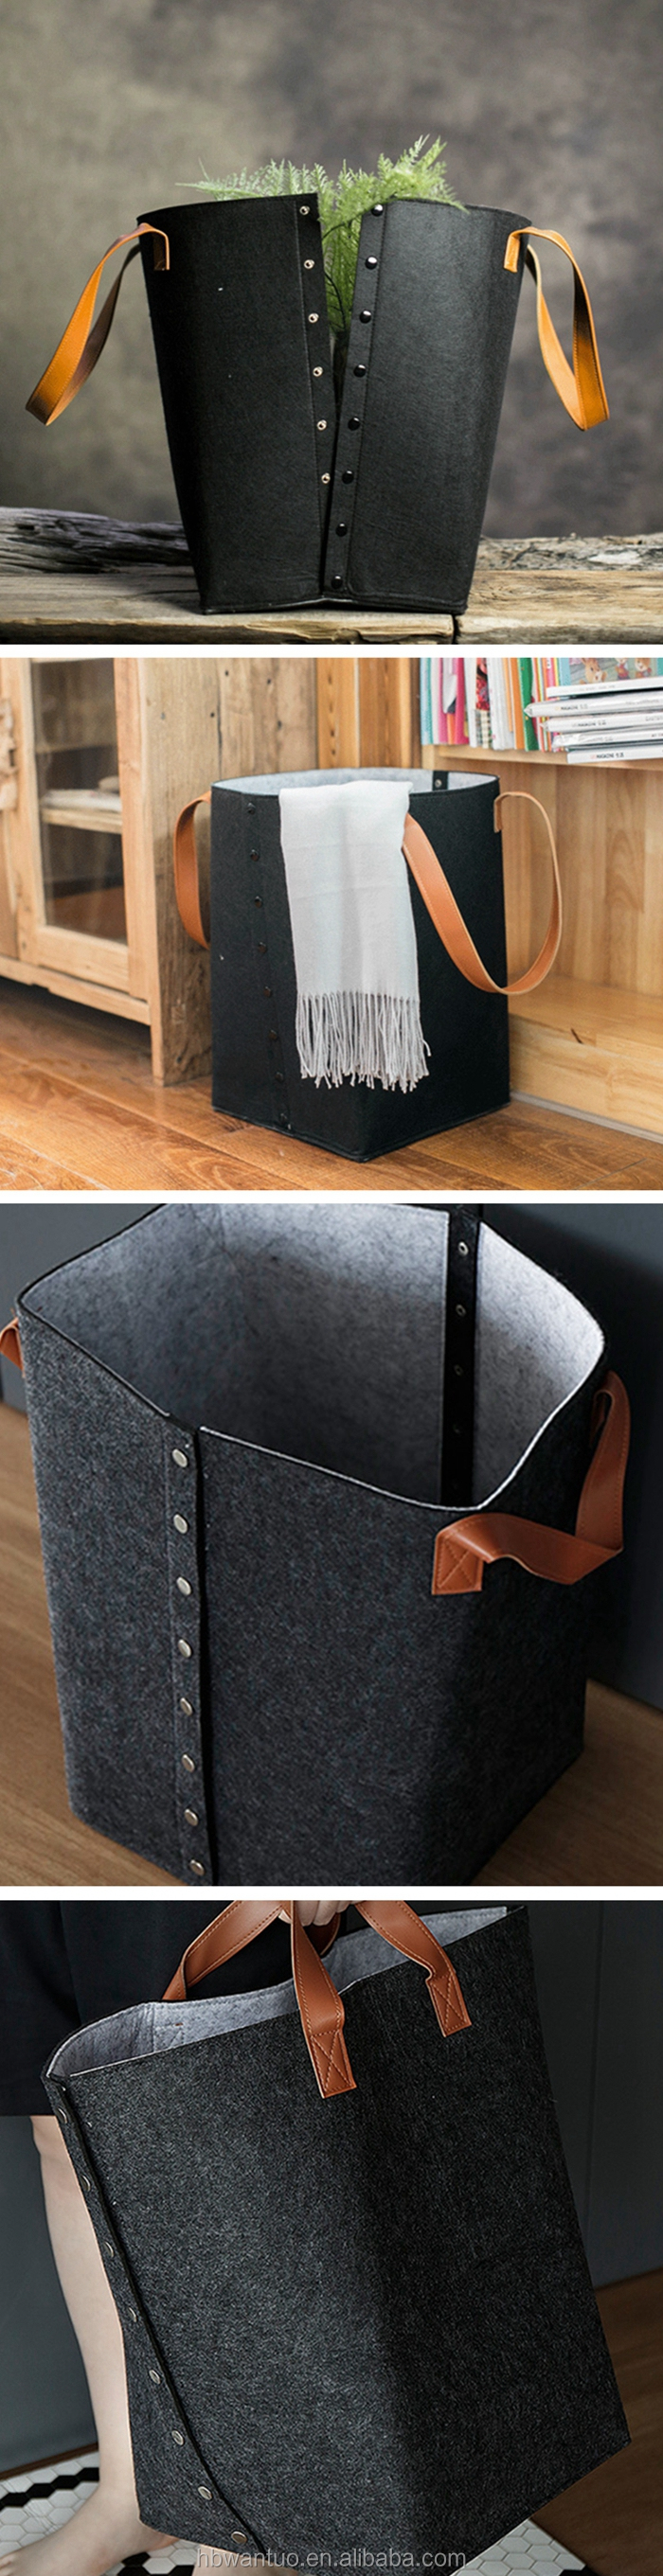 Large felt storage tote school book organizer bin bag